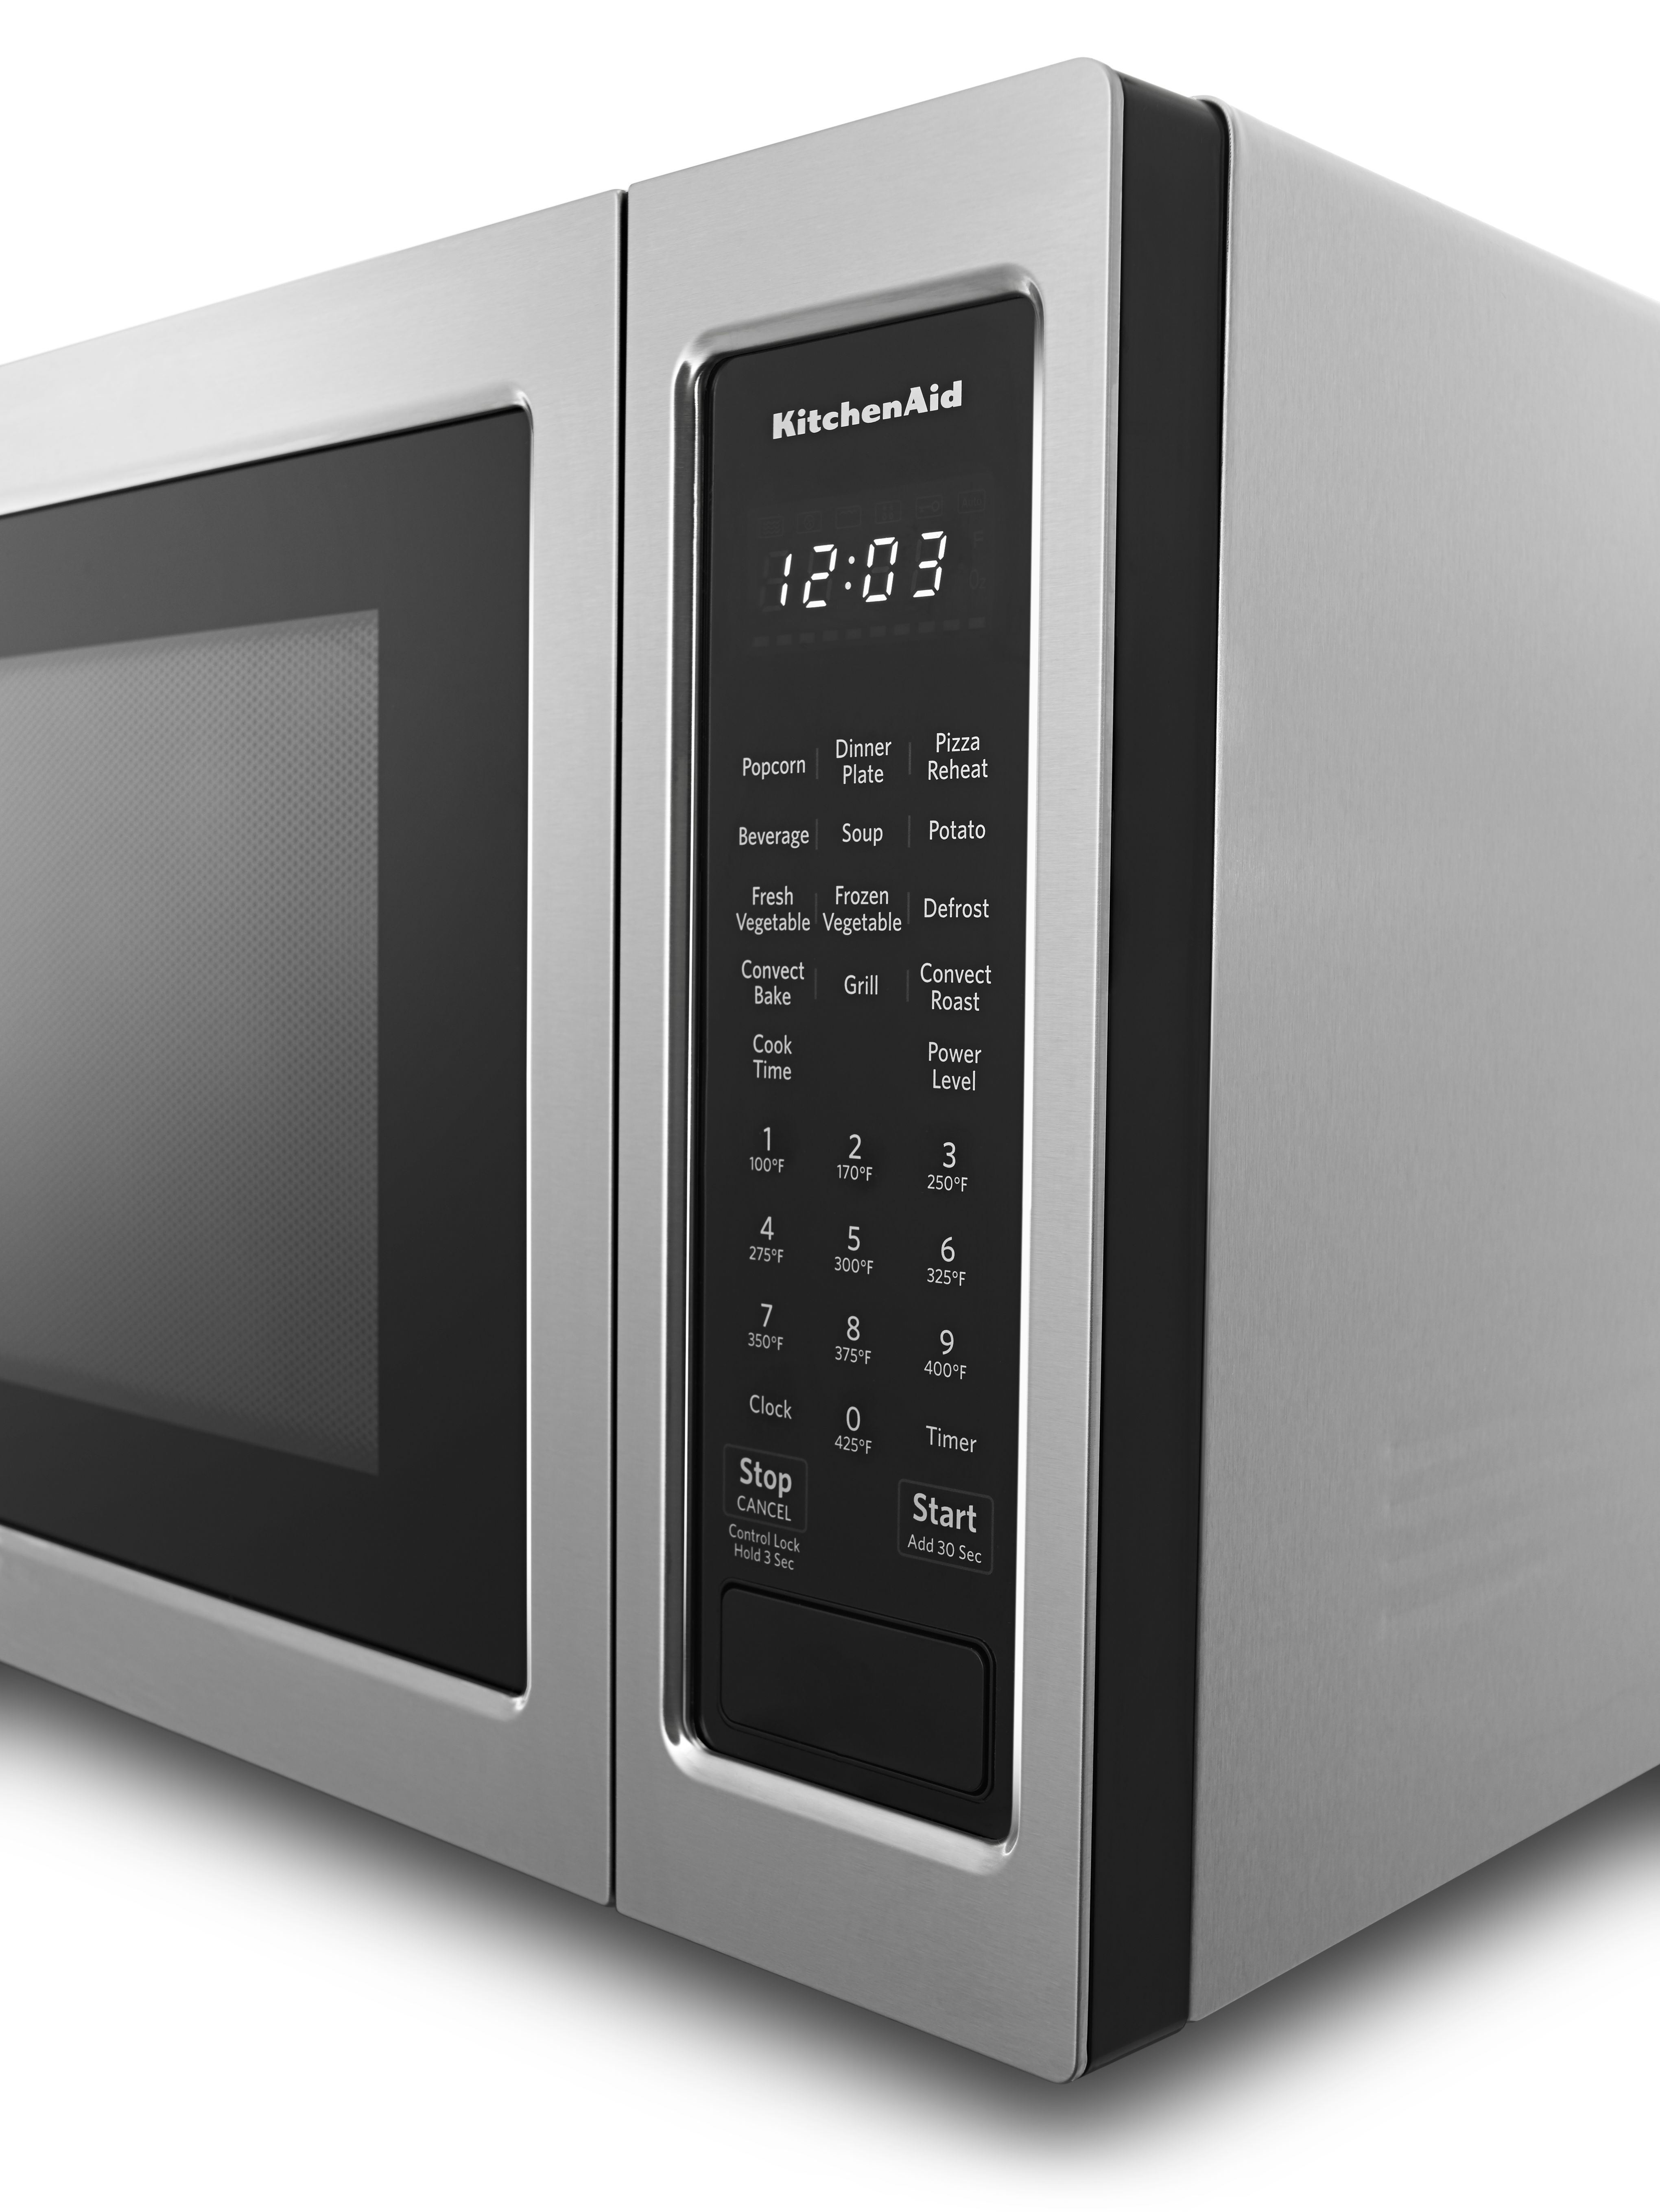 Kitchenaid Countertop Convection Microwave Oven Stainless Steel Kmcc5015gss